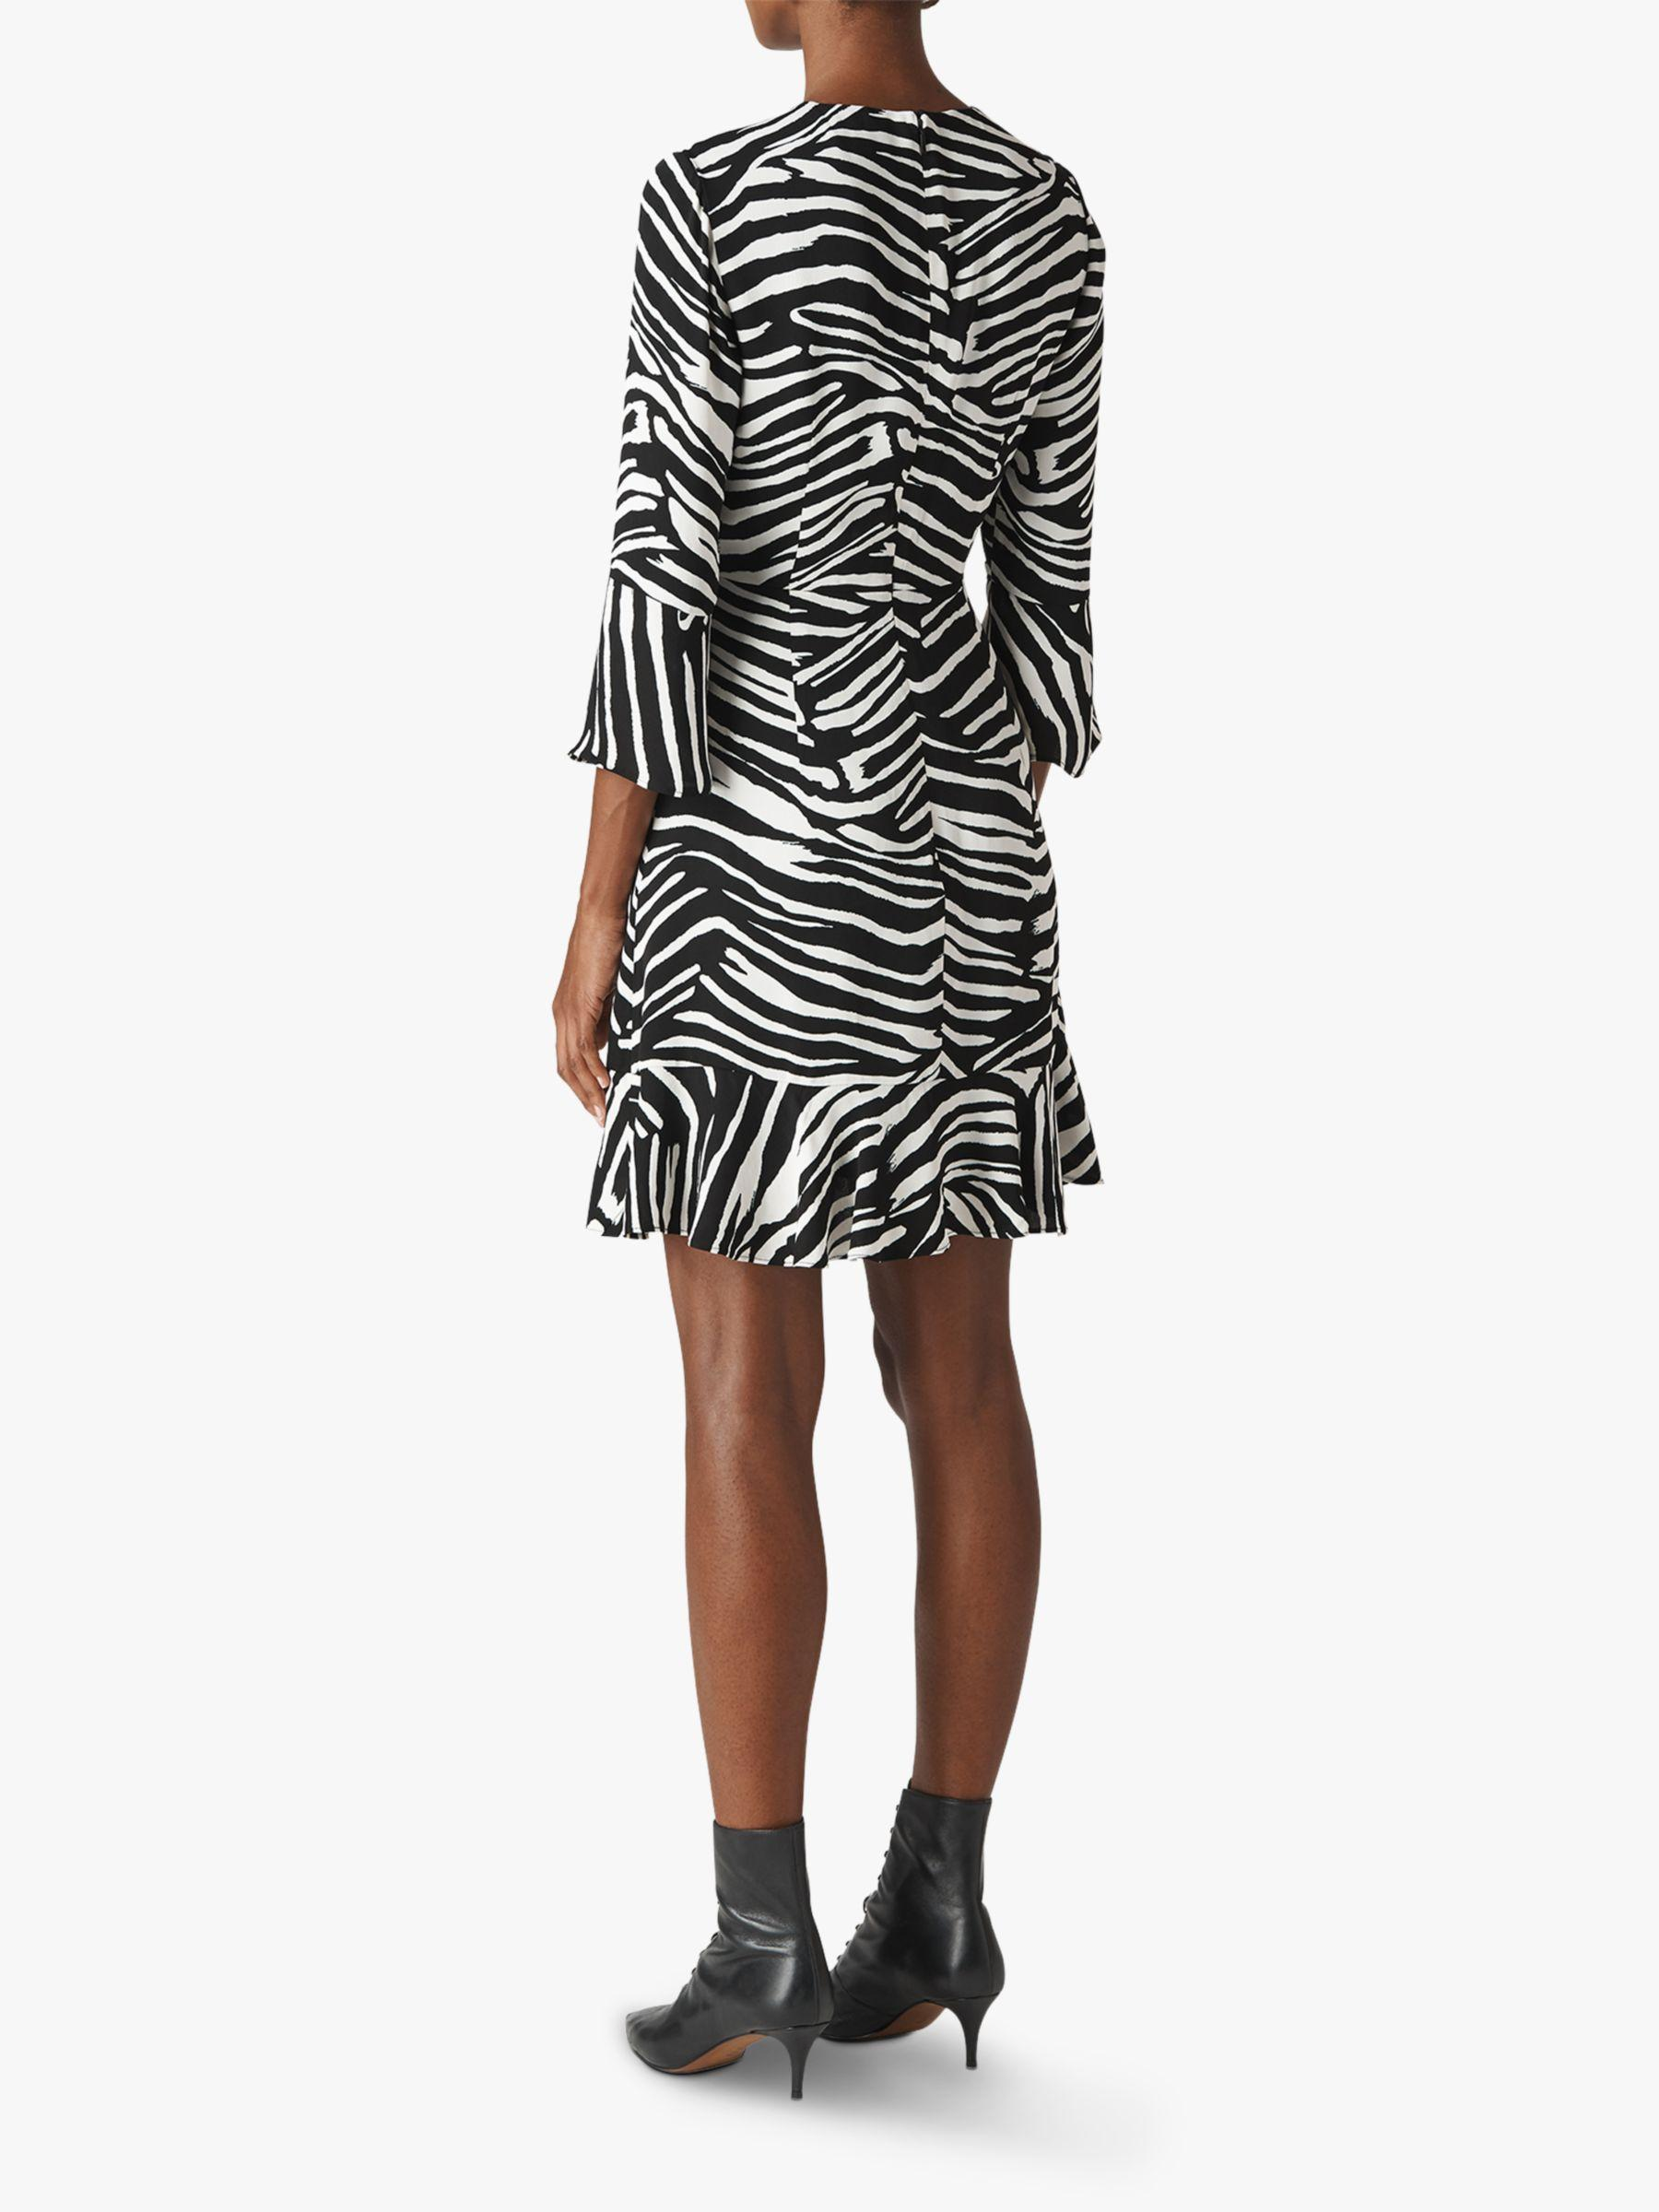 c85533448c4f Whistles Zebra Print Flippy Dress in Black - Lyst